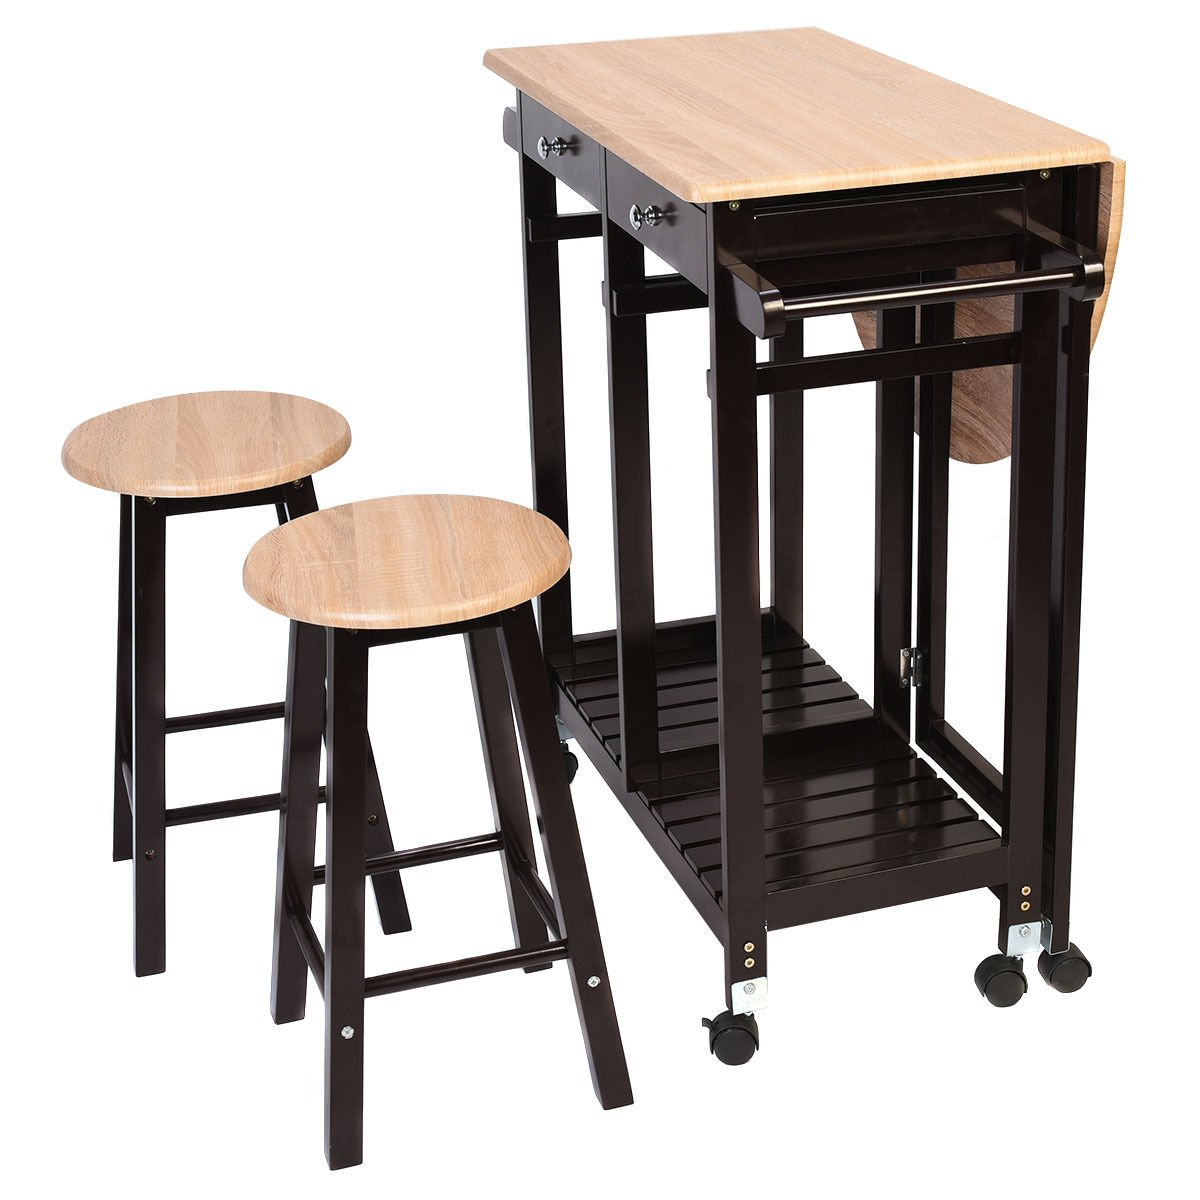 Charmant Amazon.com: 3PC Wood Kitchen Island Rolling Cart Set Dinning Drop Leaf Table  W/ 2 Stools New: Office Products